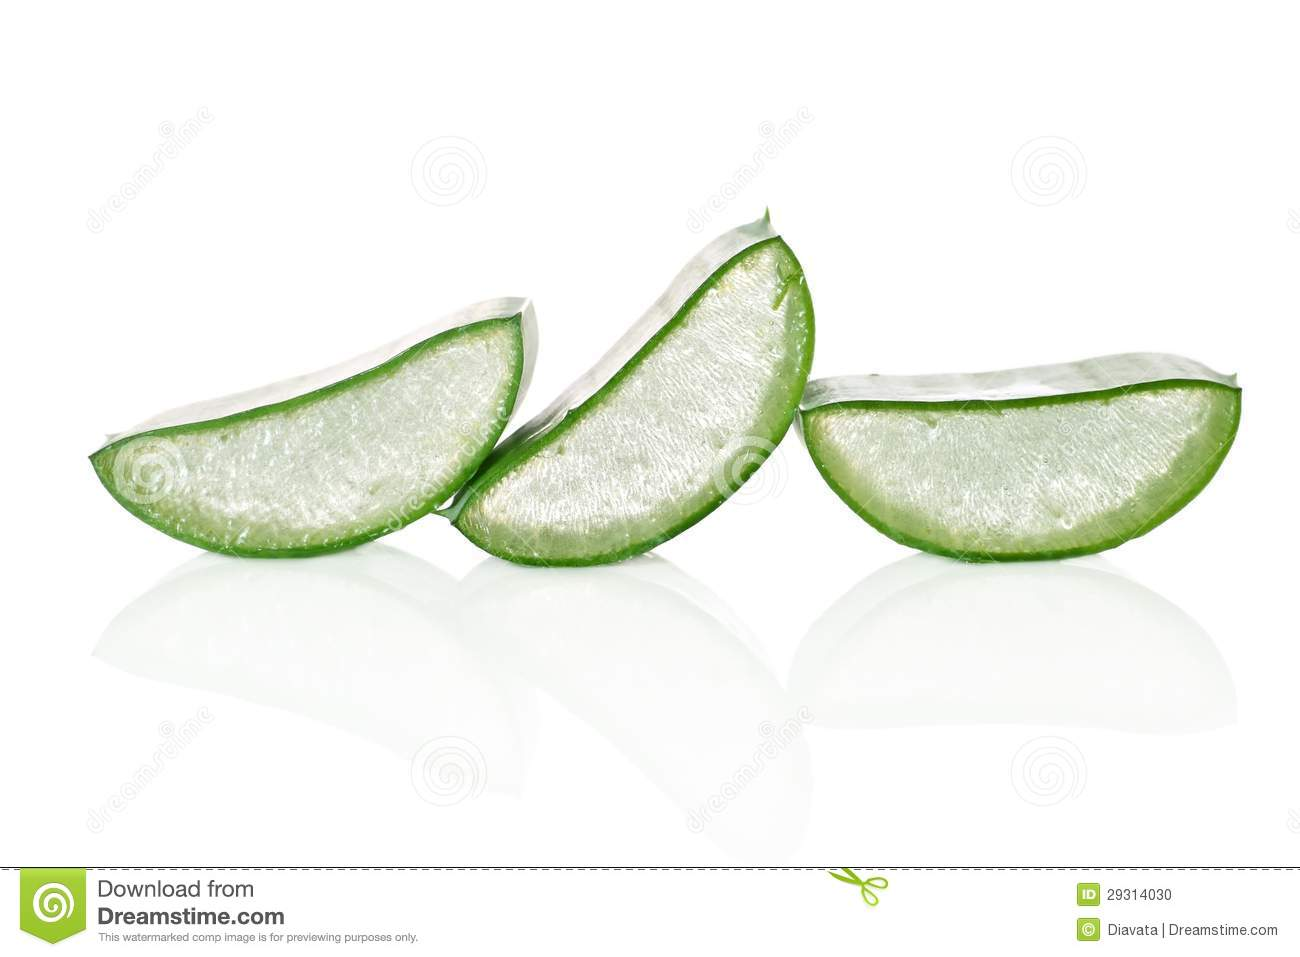 Dining Room Table Plans With Leaves Fresh Cut Aloe Vera Slices Stock Photo Image 29314030